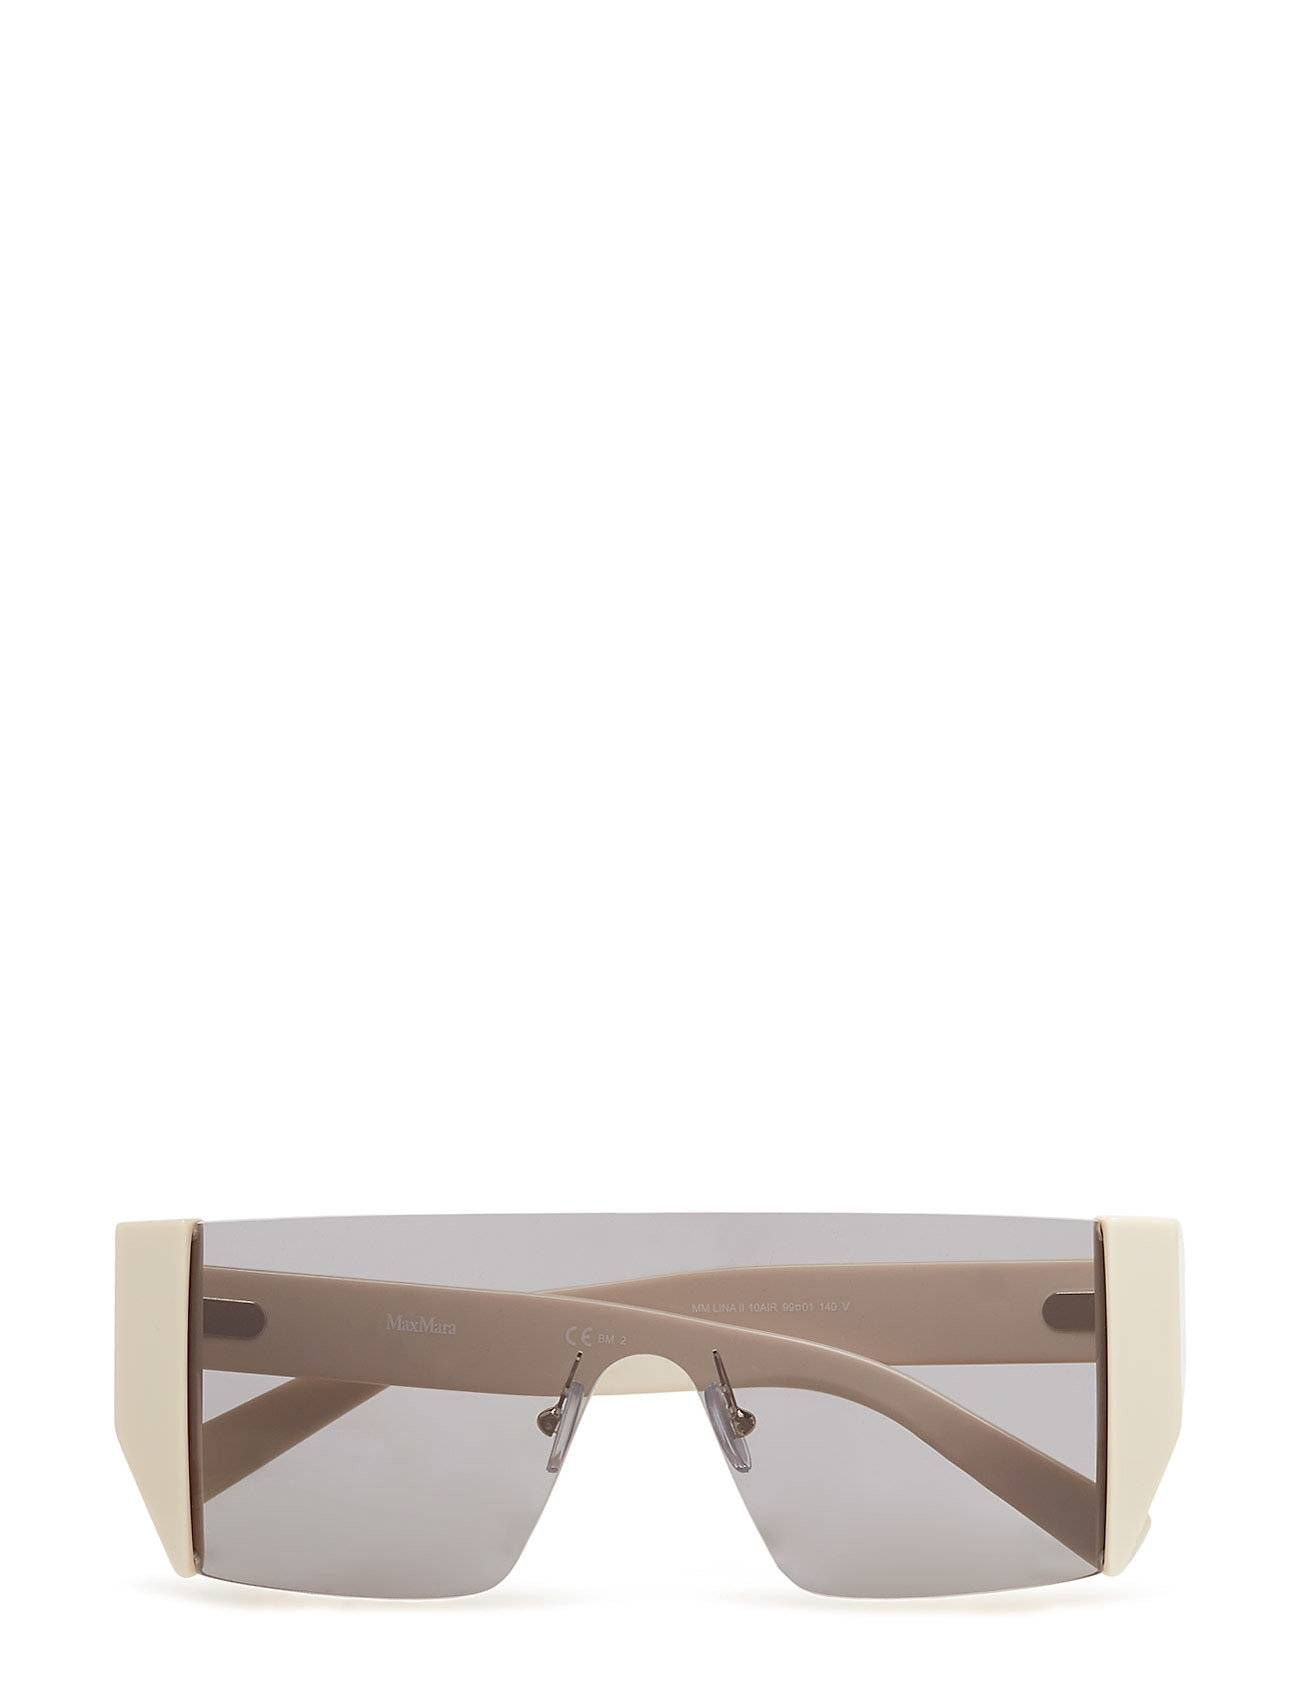 MAXMARA Sunglasses Mm Lina Ii